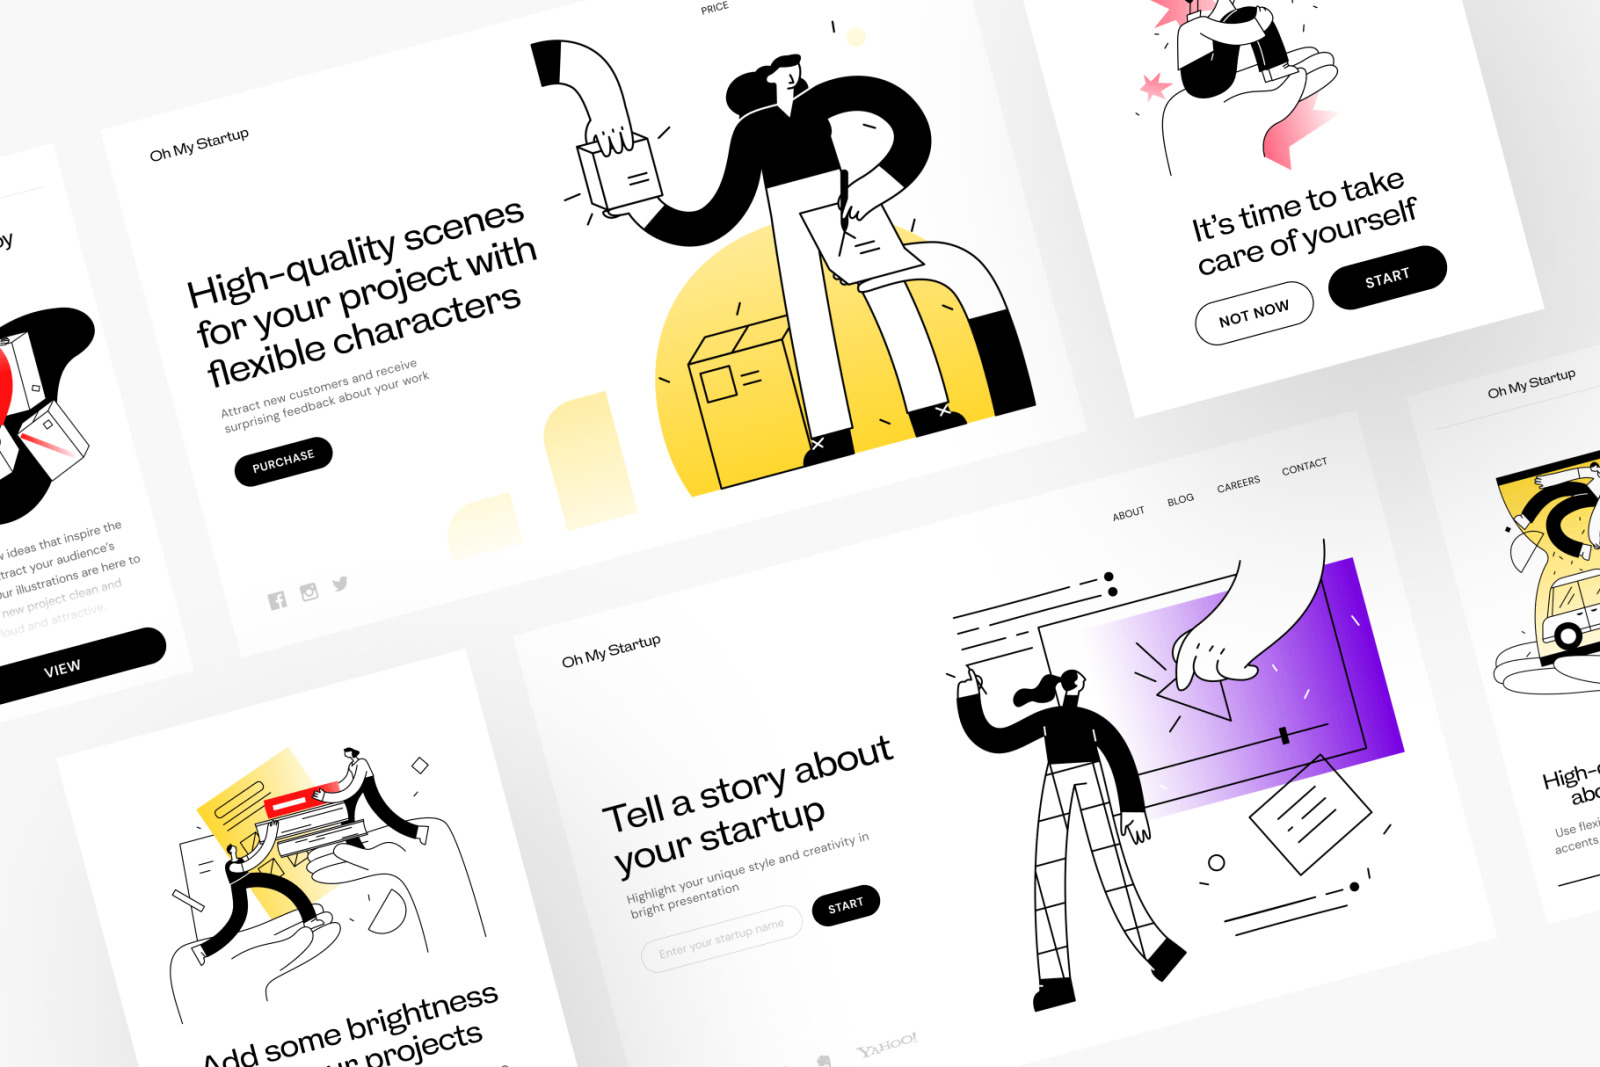 Oh My Startup Illustrations